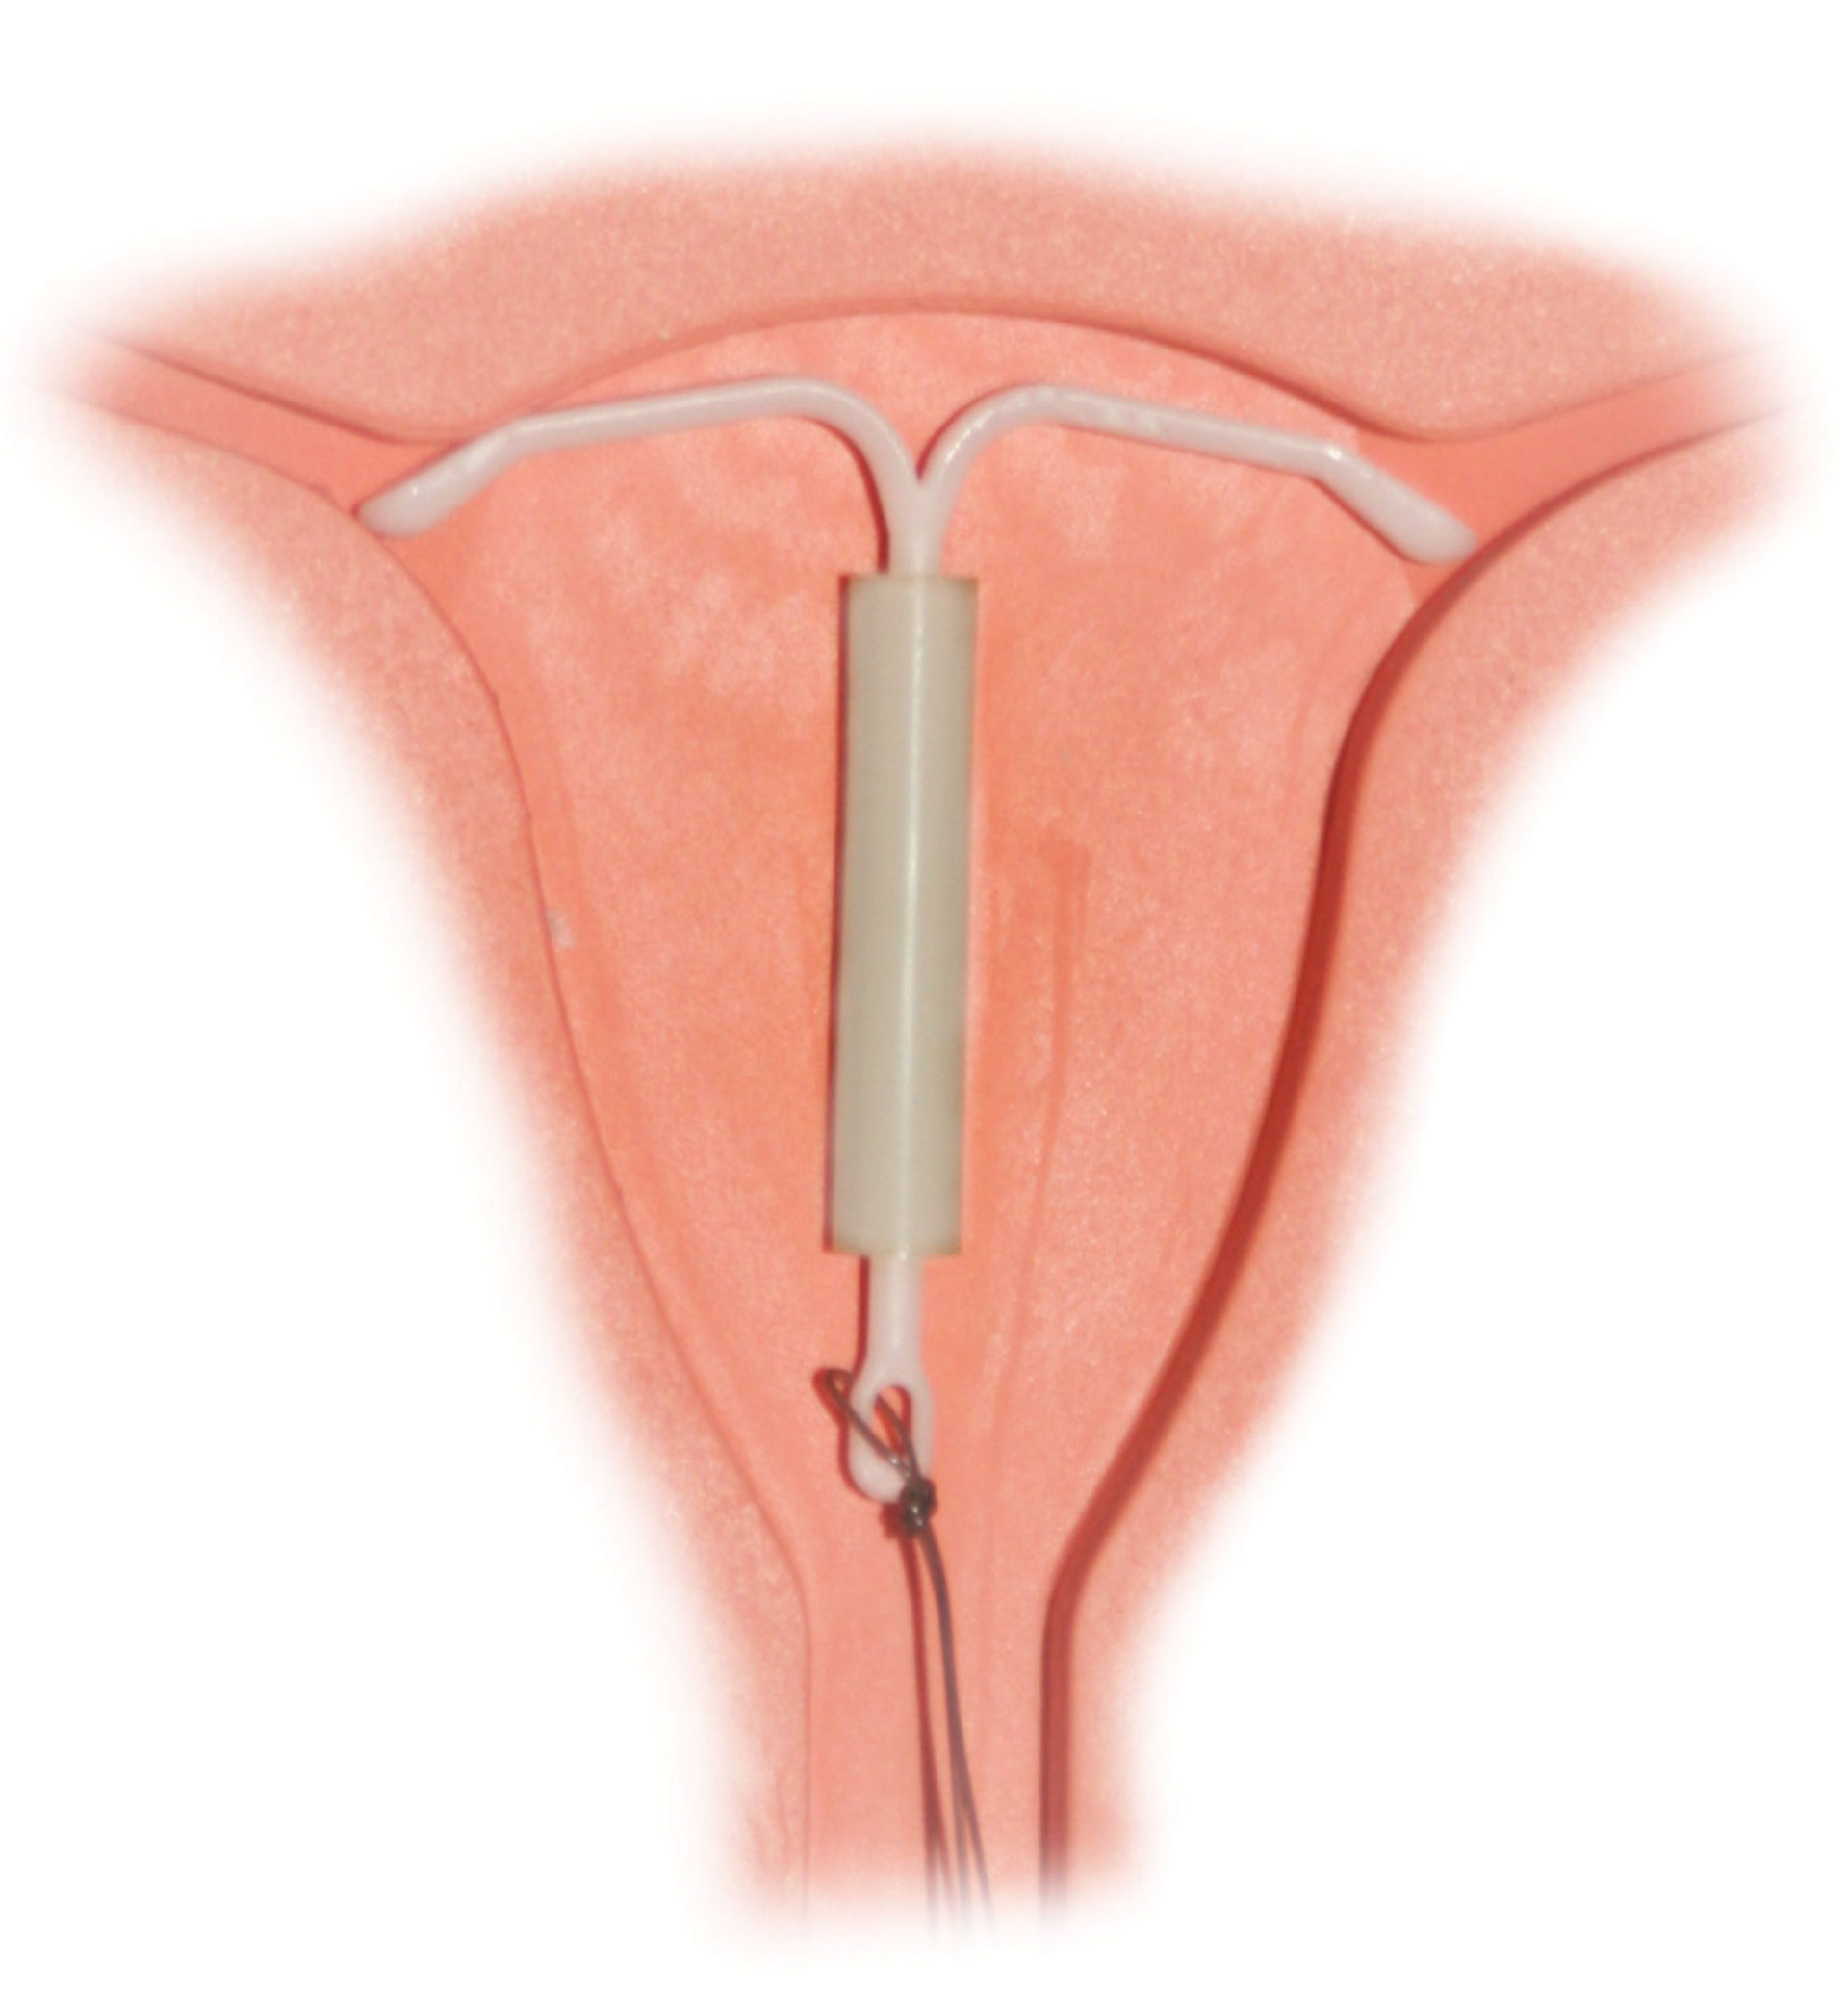 Correctly placed IUD